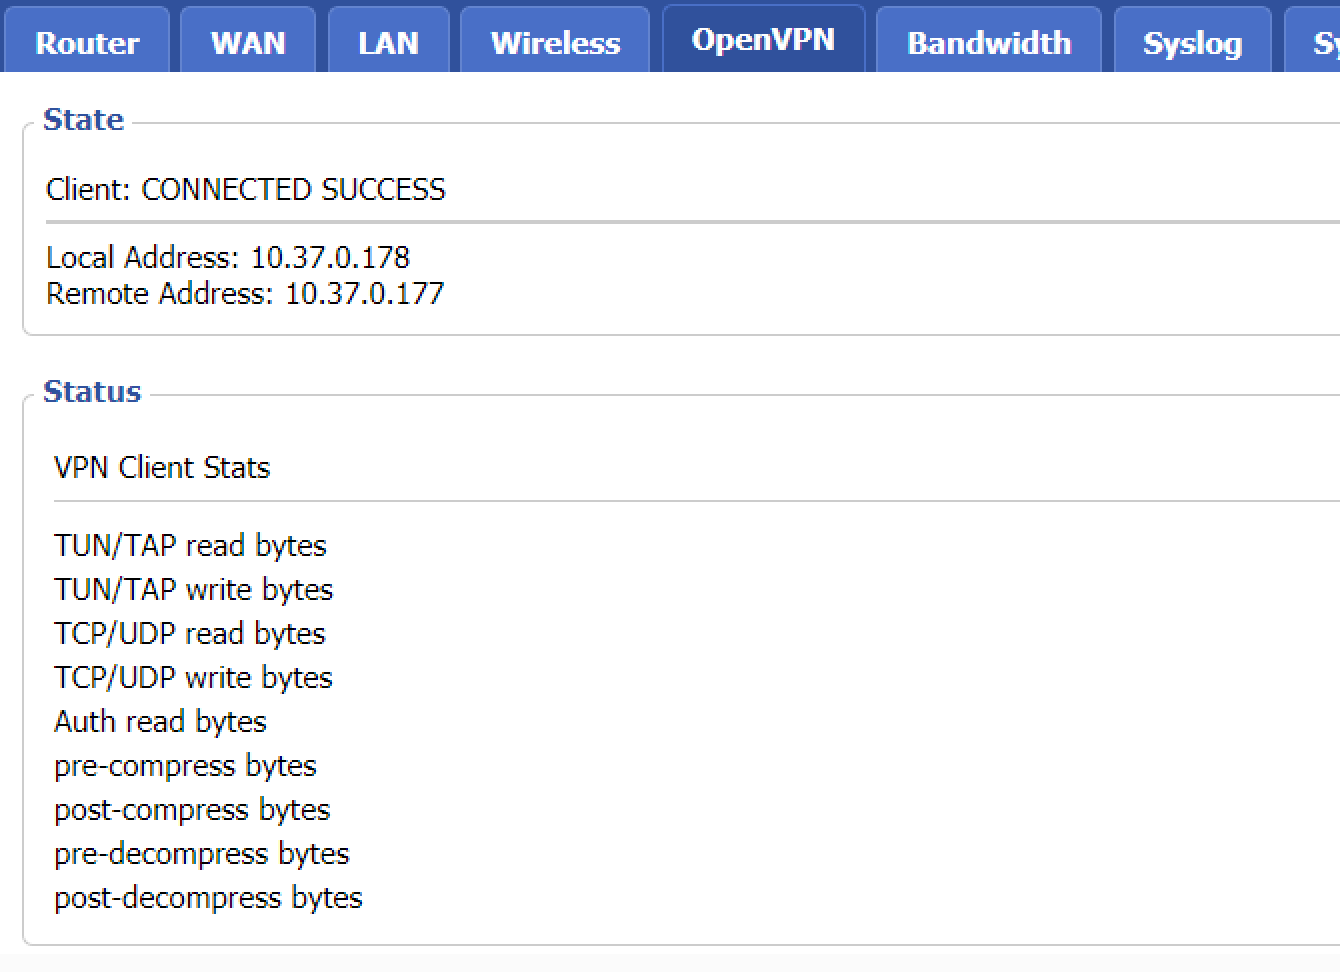 Your OpenVPN connection is successful.